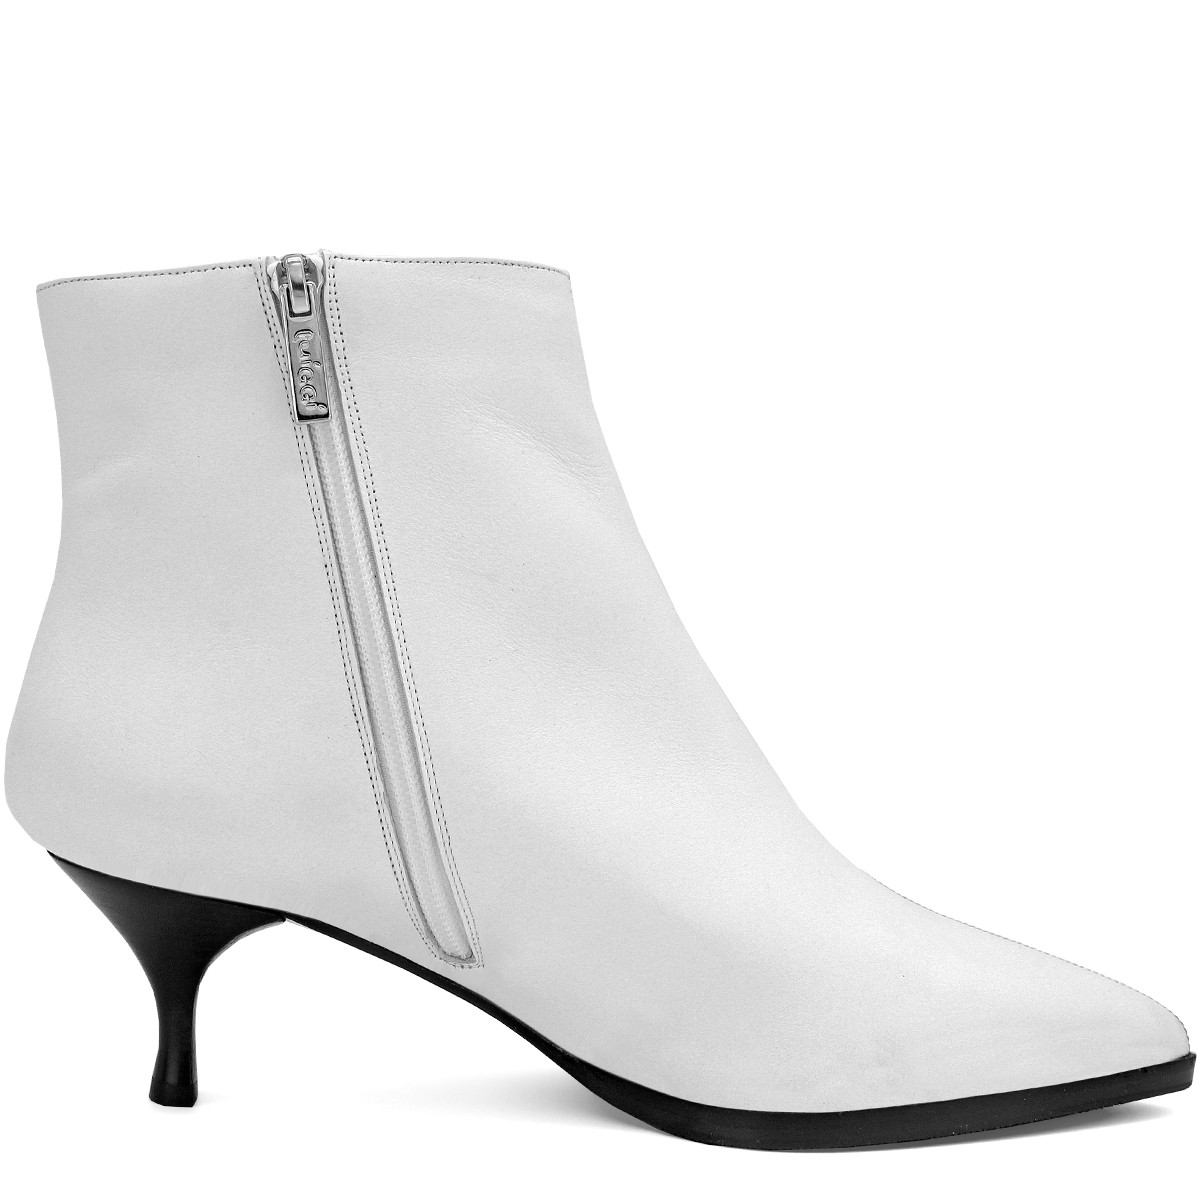 WHITE LEATHER STYLISH WOOL FUR LINED ANKLE BOOTS